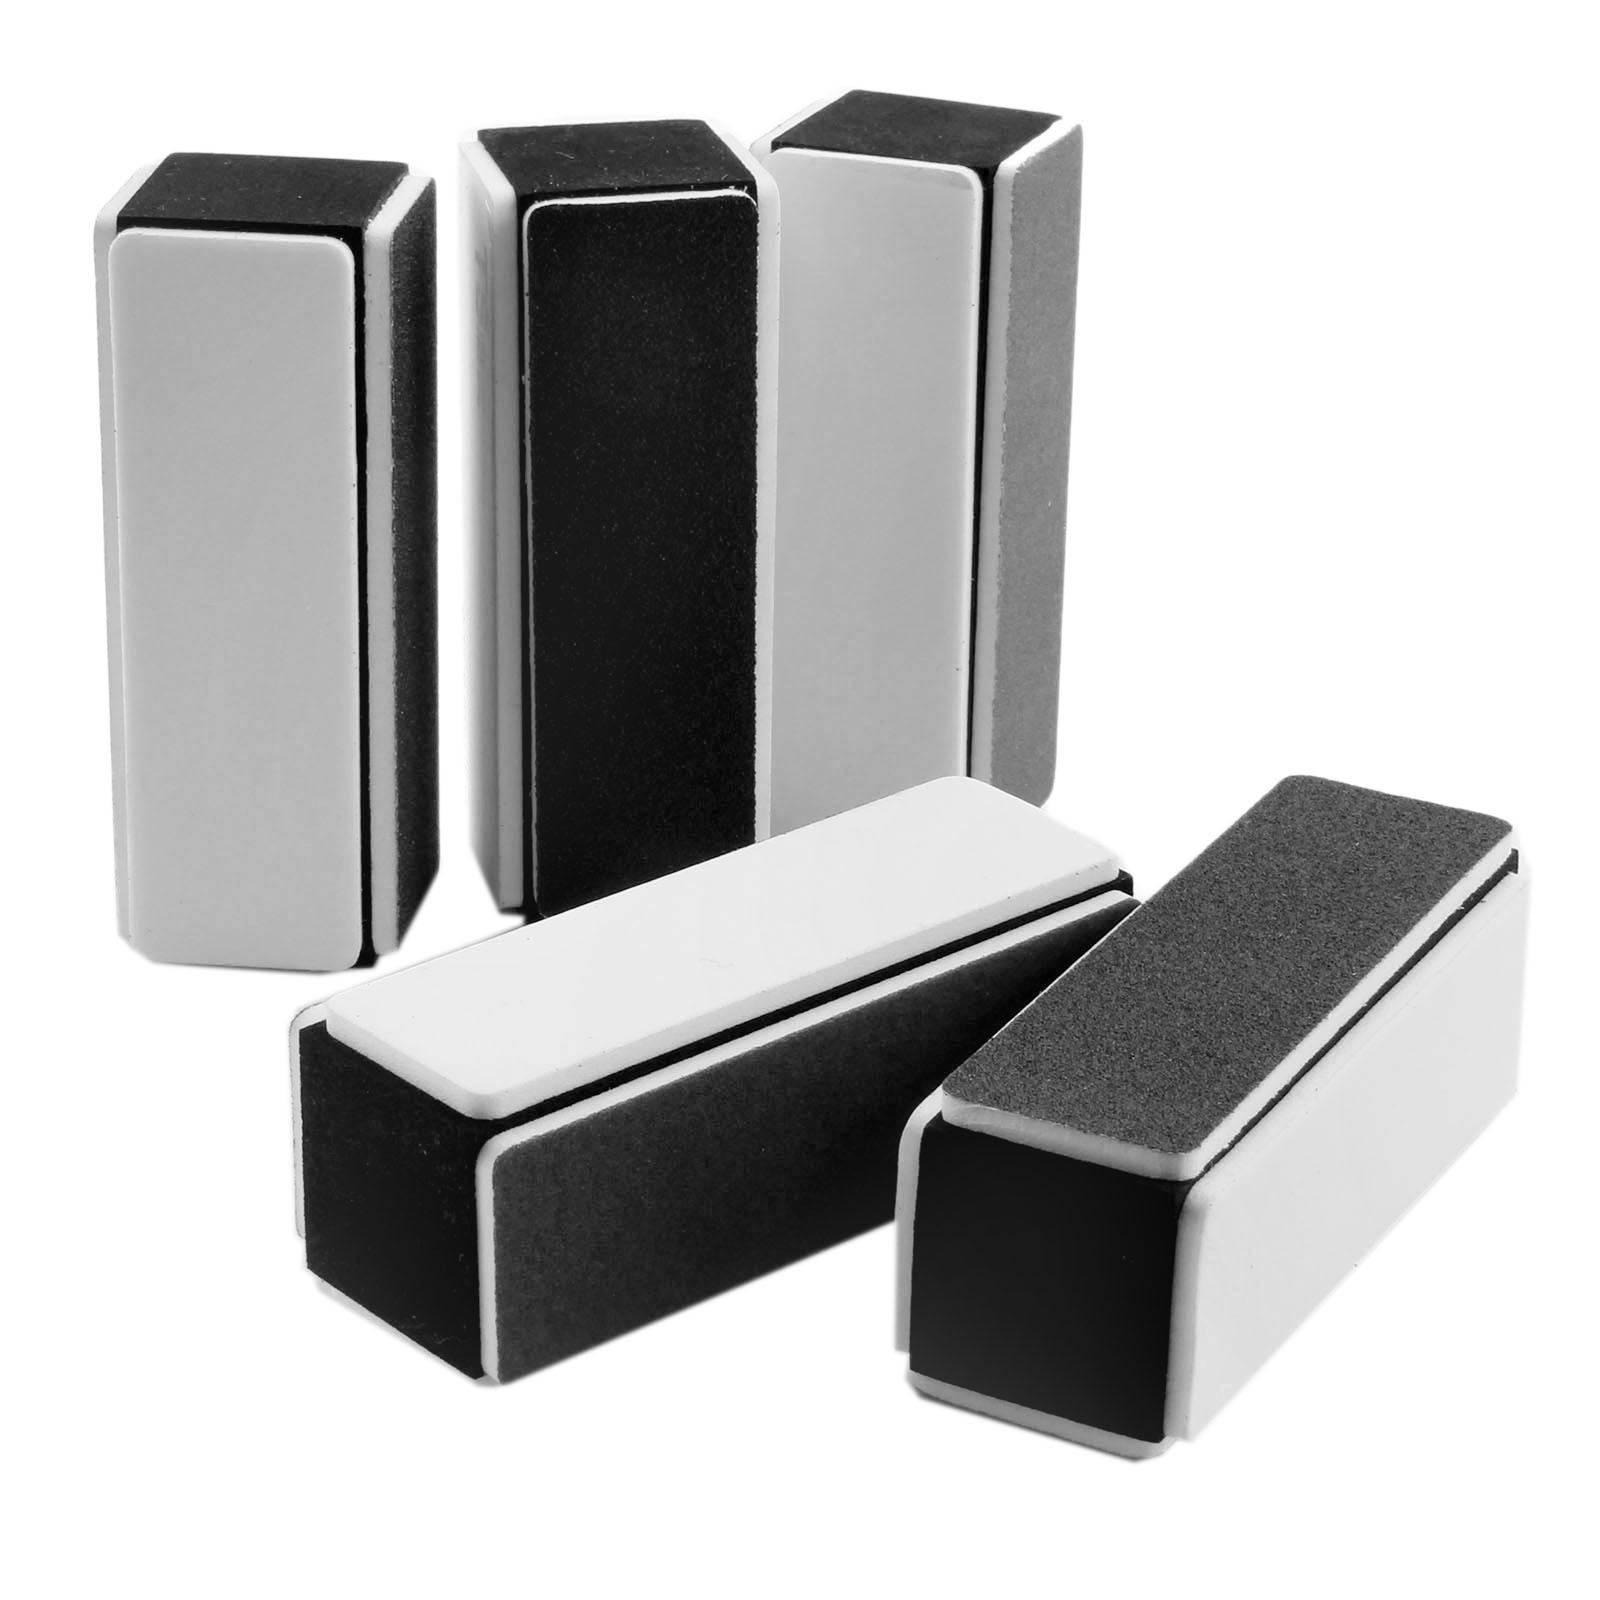 DRELD 5Pcs/lot Sanding Polishing Buffers 4 Way Sponge Buffer Polishing Block Grit 3000 400 240